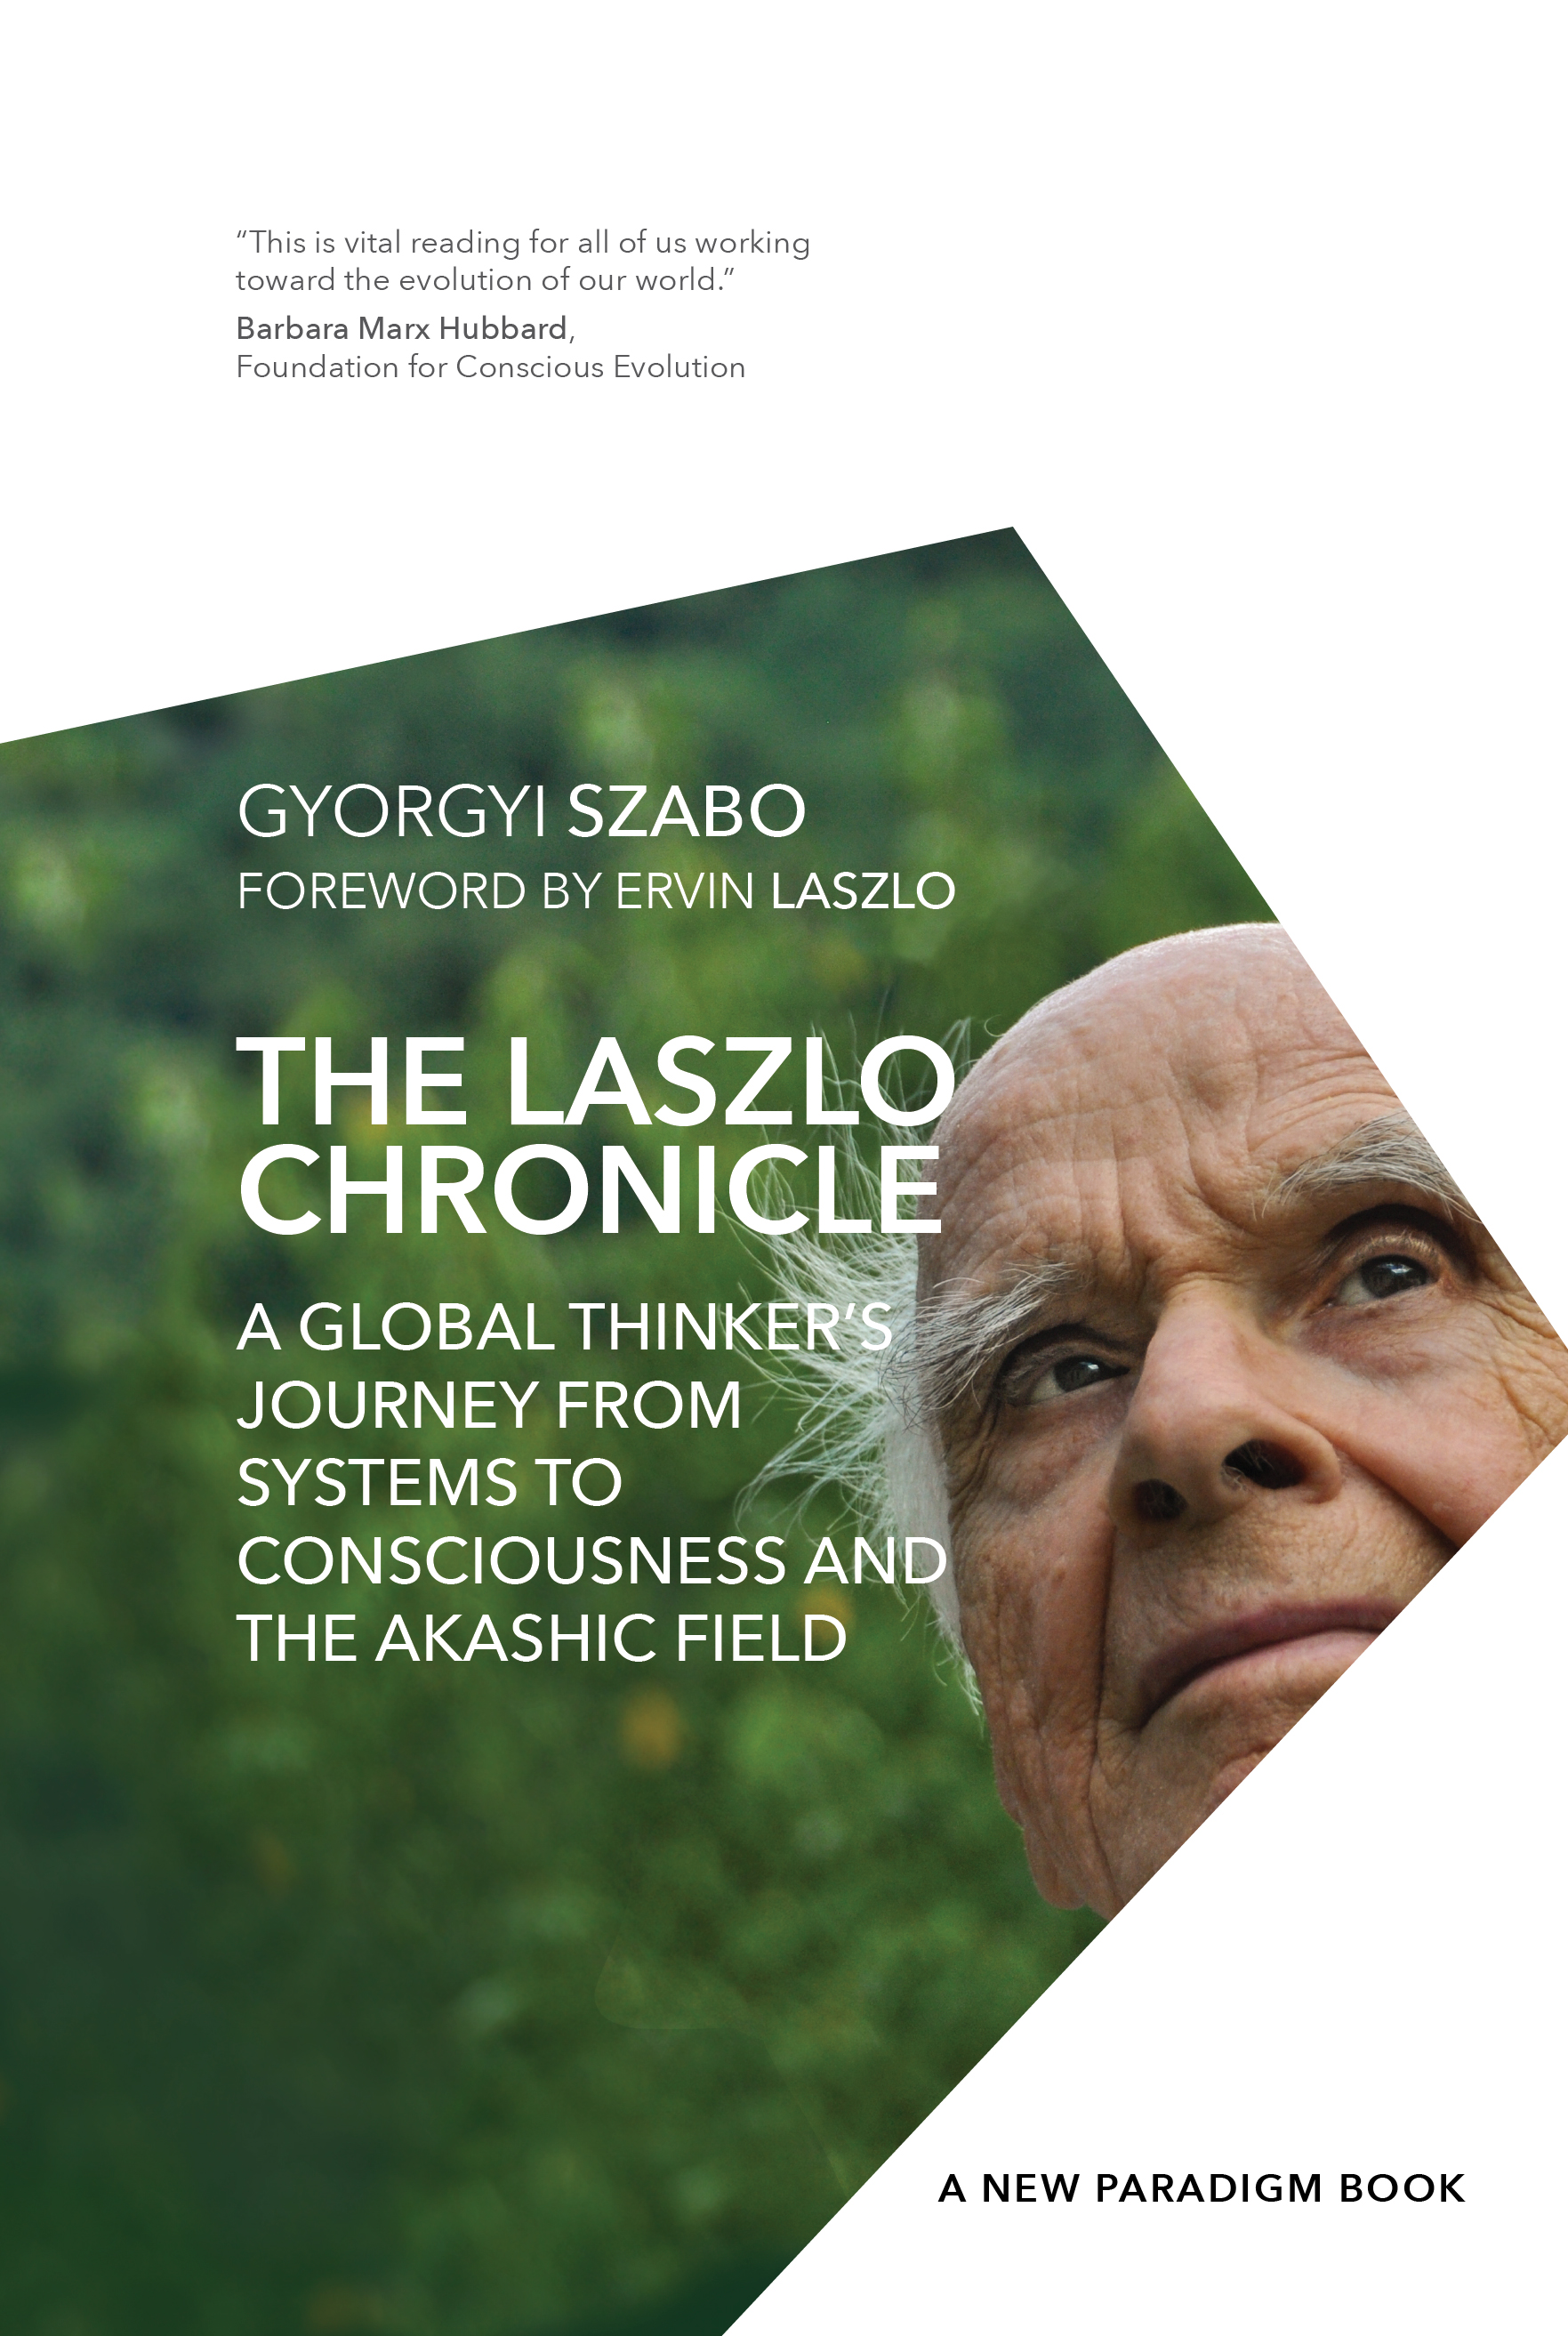 The Laszlo Chronicle